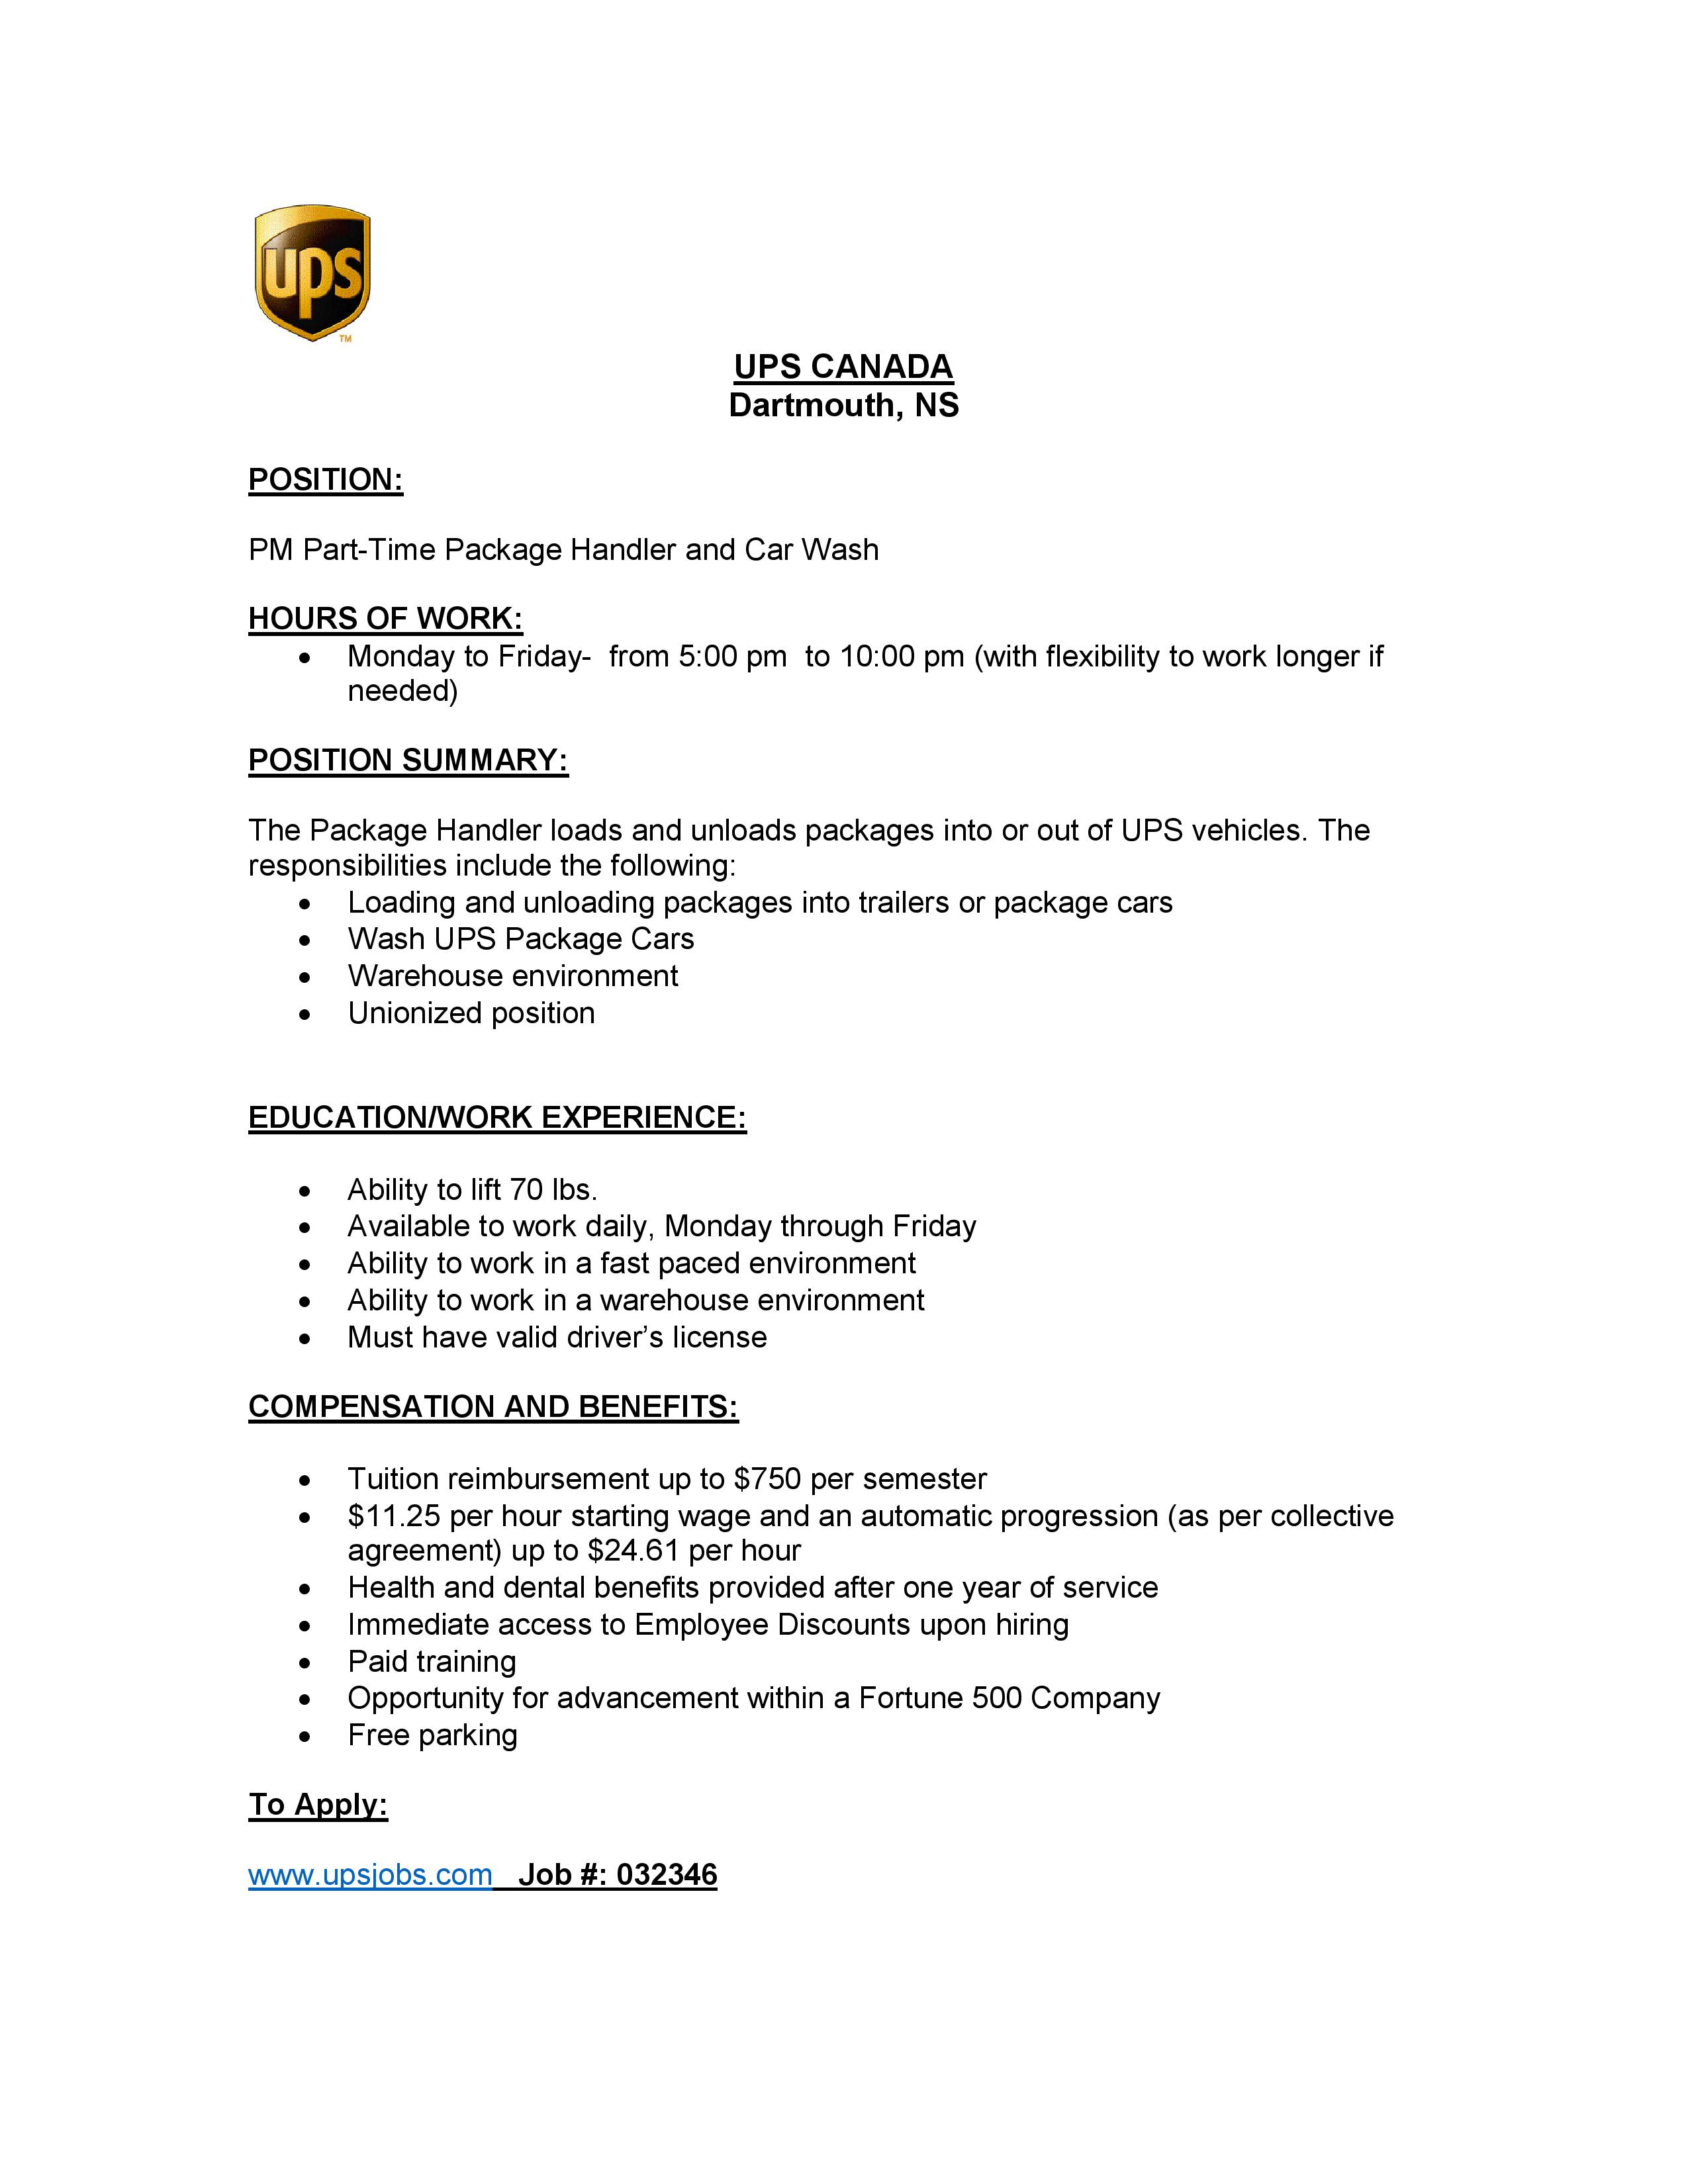 Ups Canada Dartmouth Part Time Package Handler And Car Wash